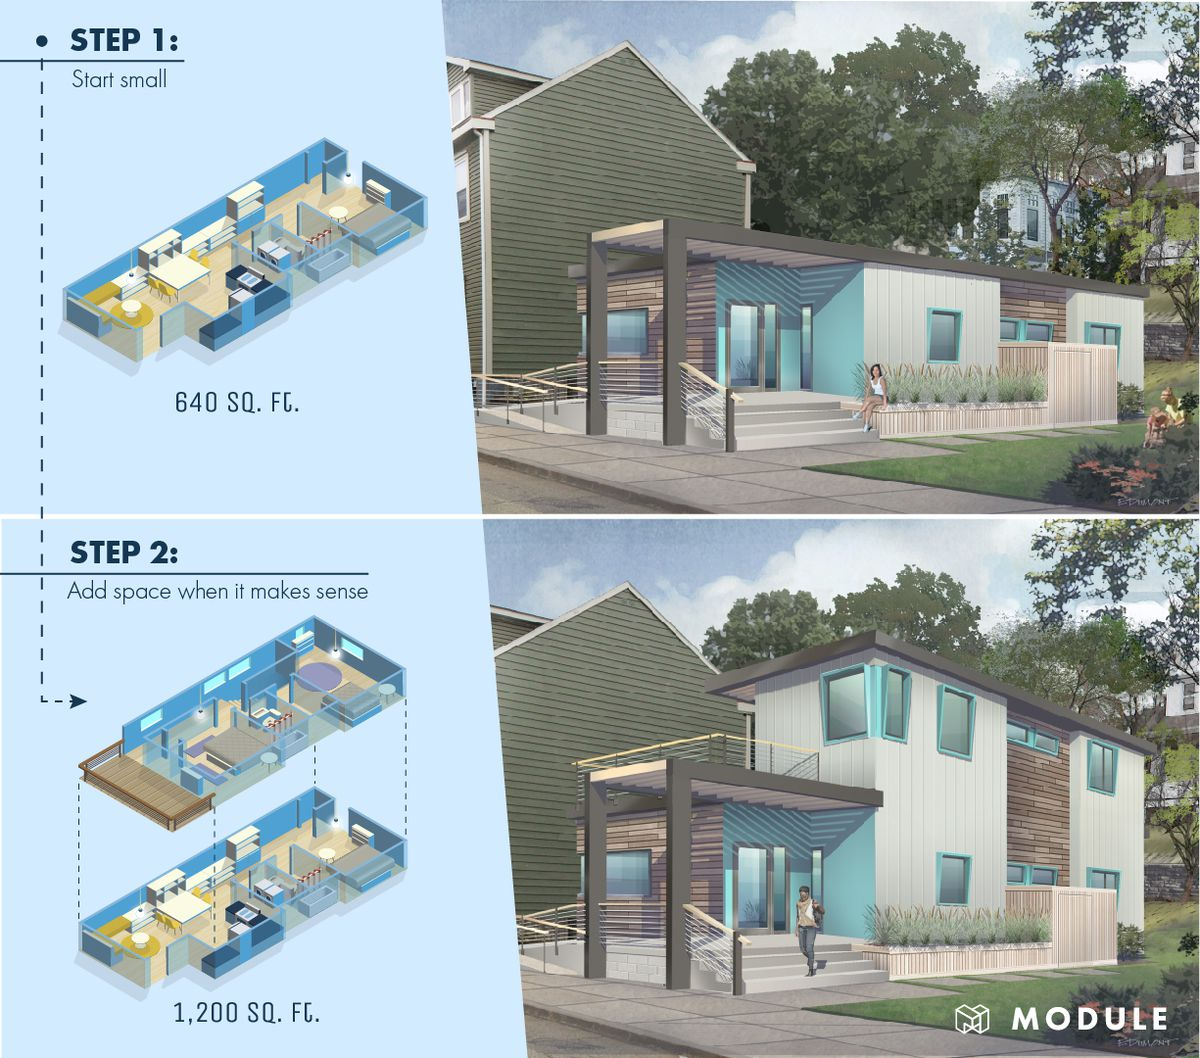 This housing startup designed homes that grow with their ...